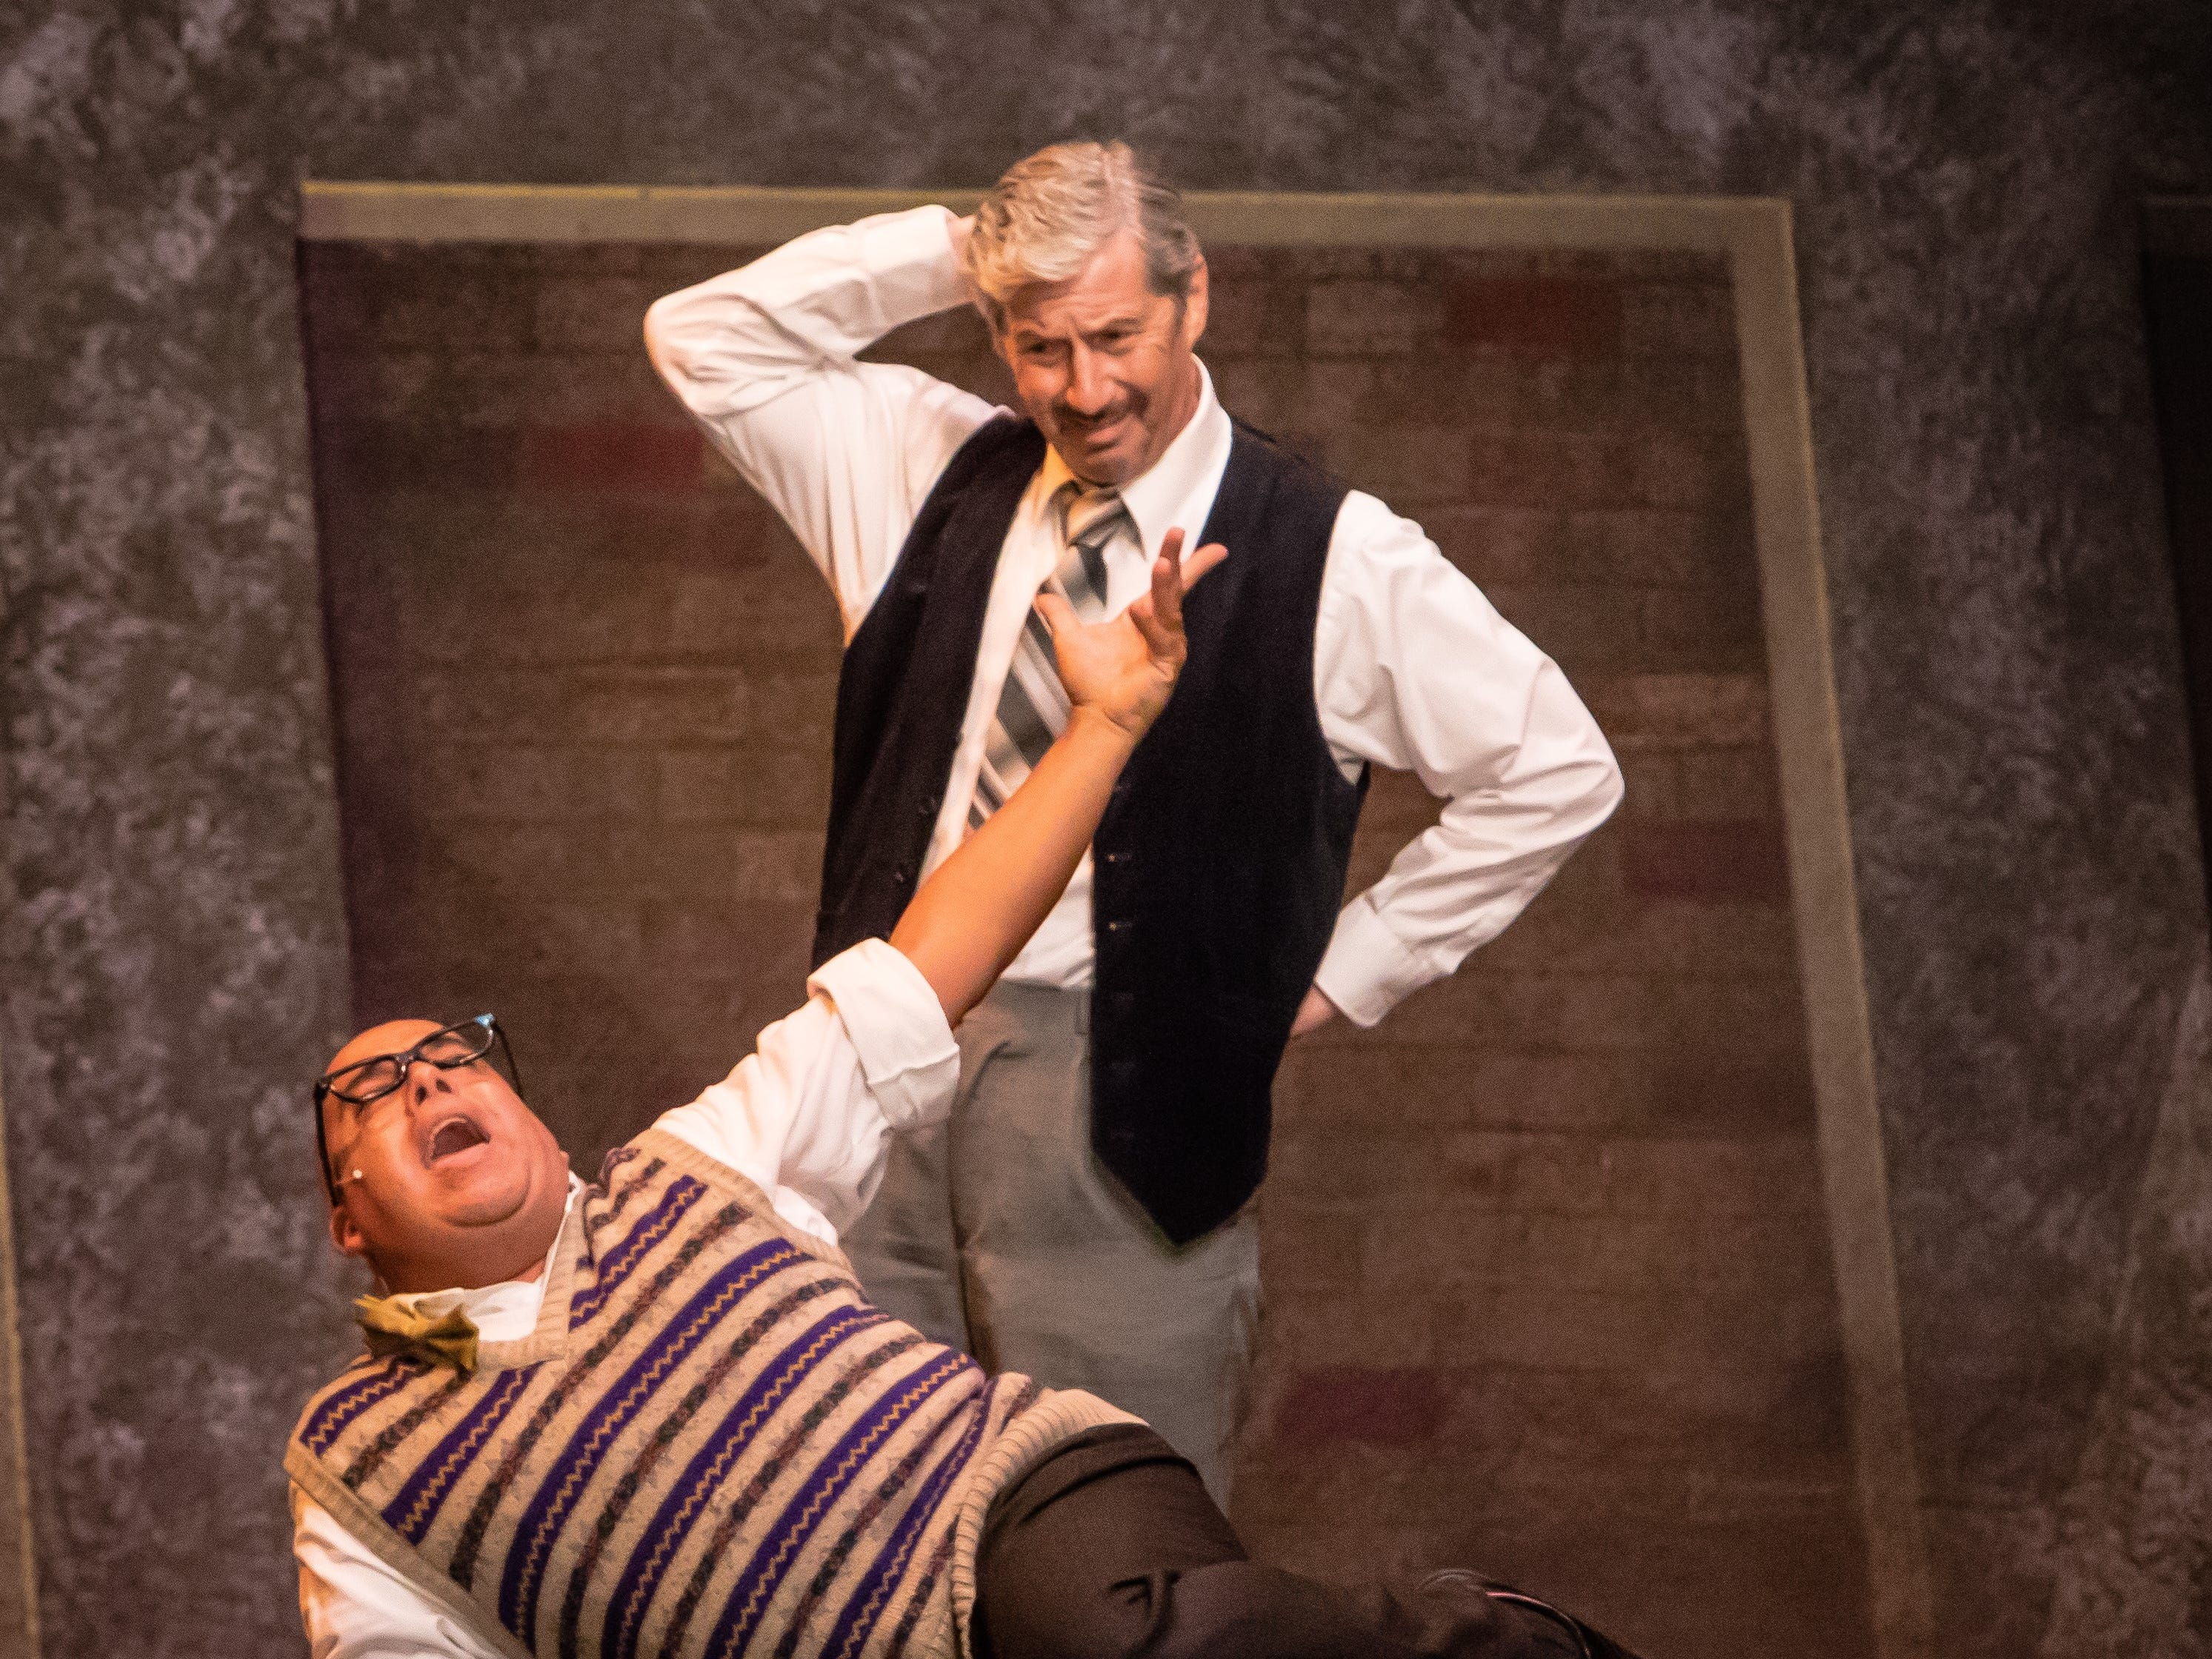 Stunt casting returns to Tempe with Charles Shaughnessy in 'A Christmas Carol'